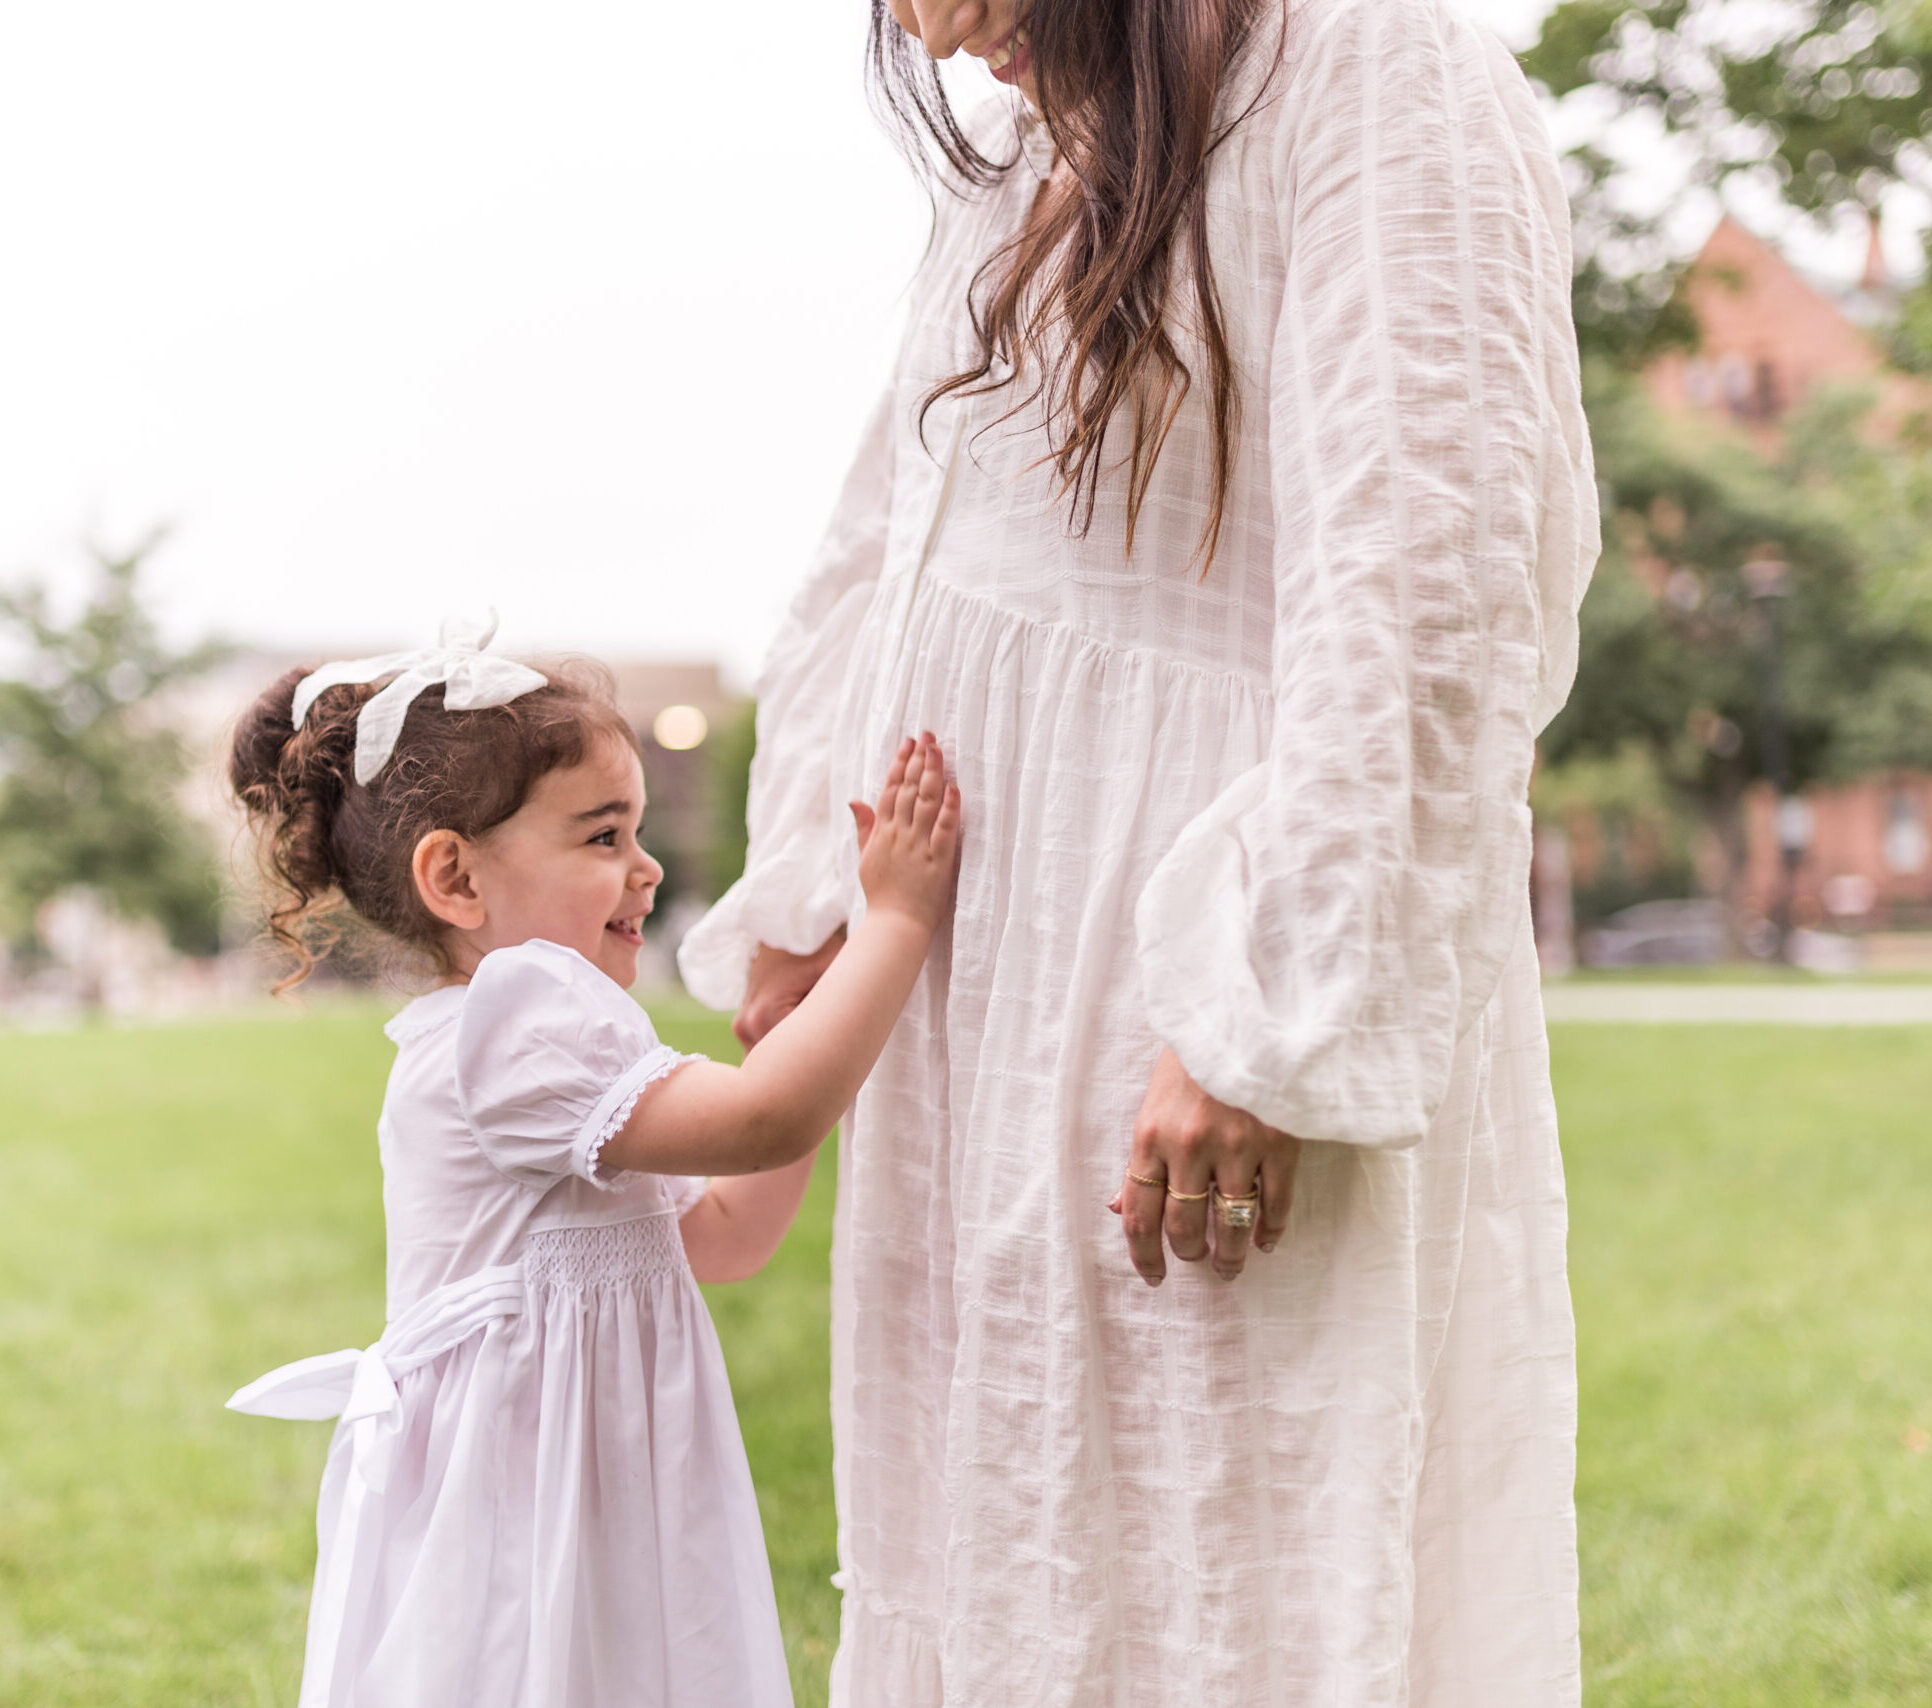 child touching her mother's baby bump